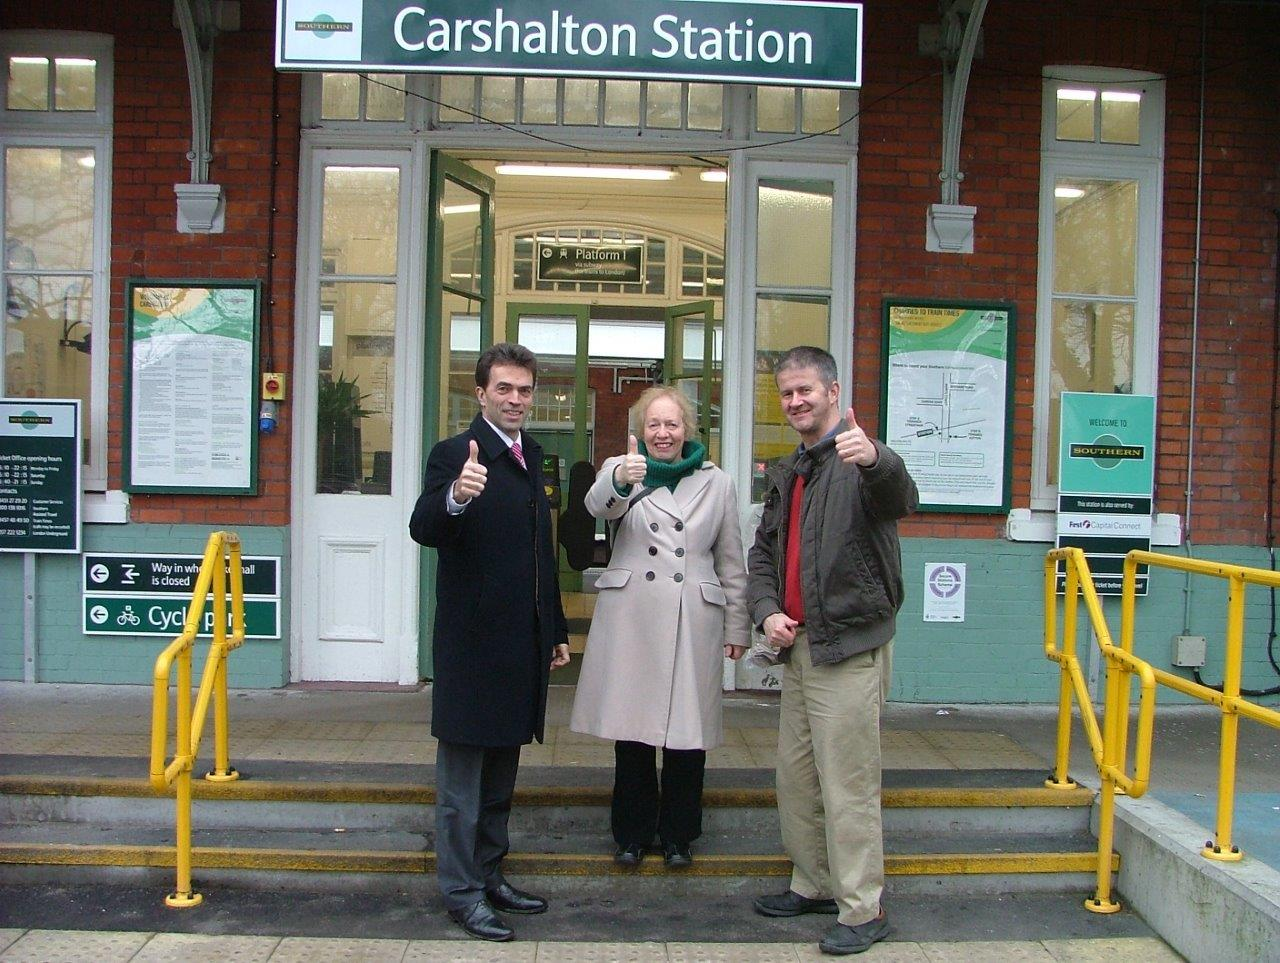 key_CarshaltonStation(1).jpg